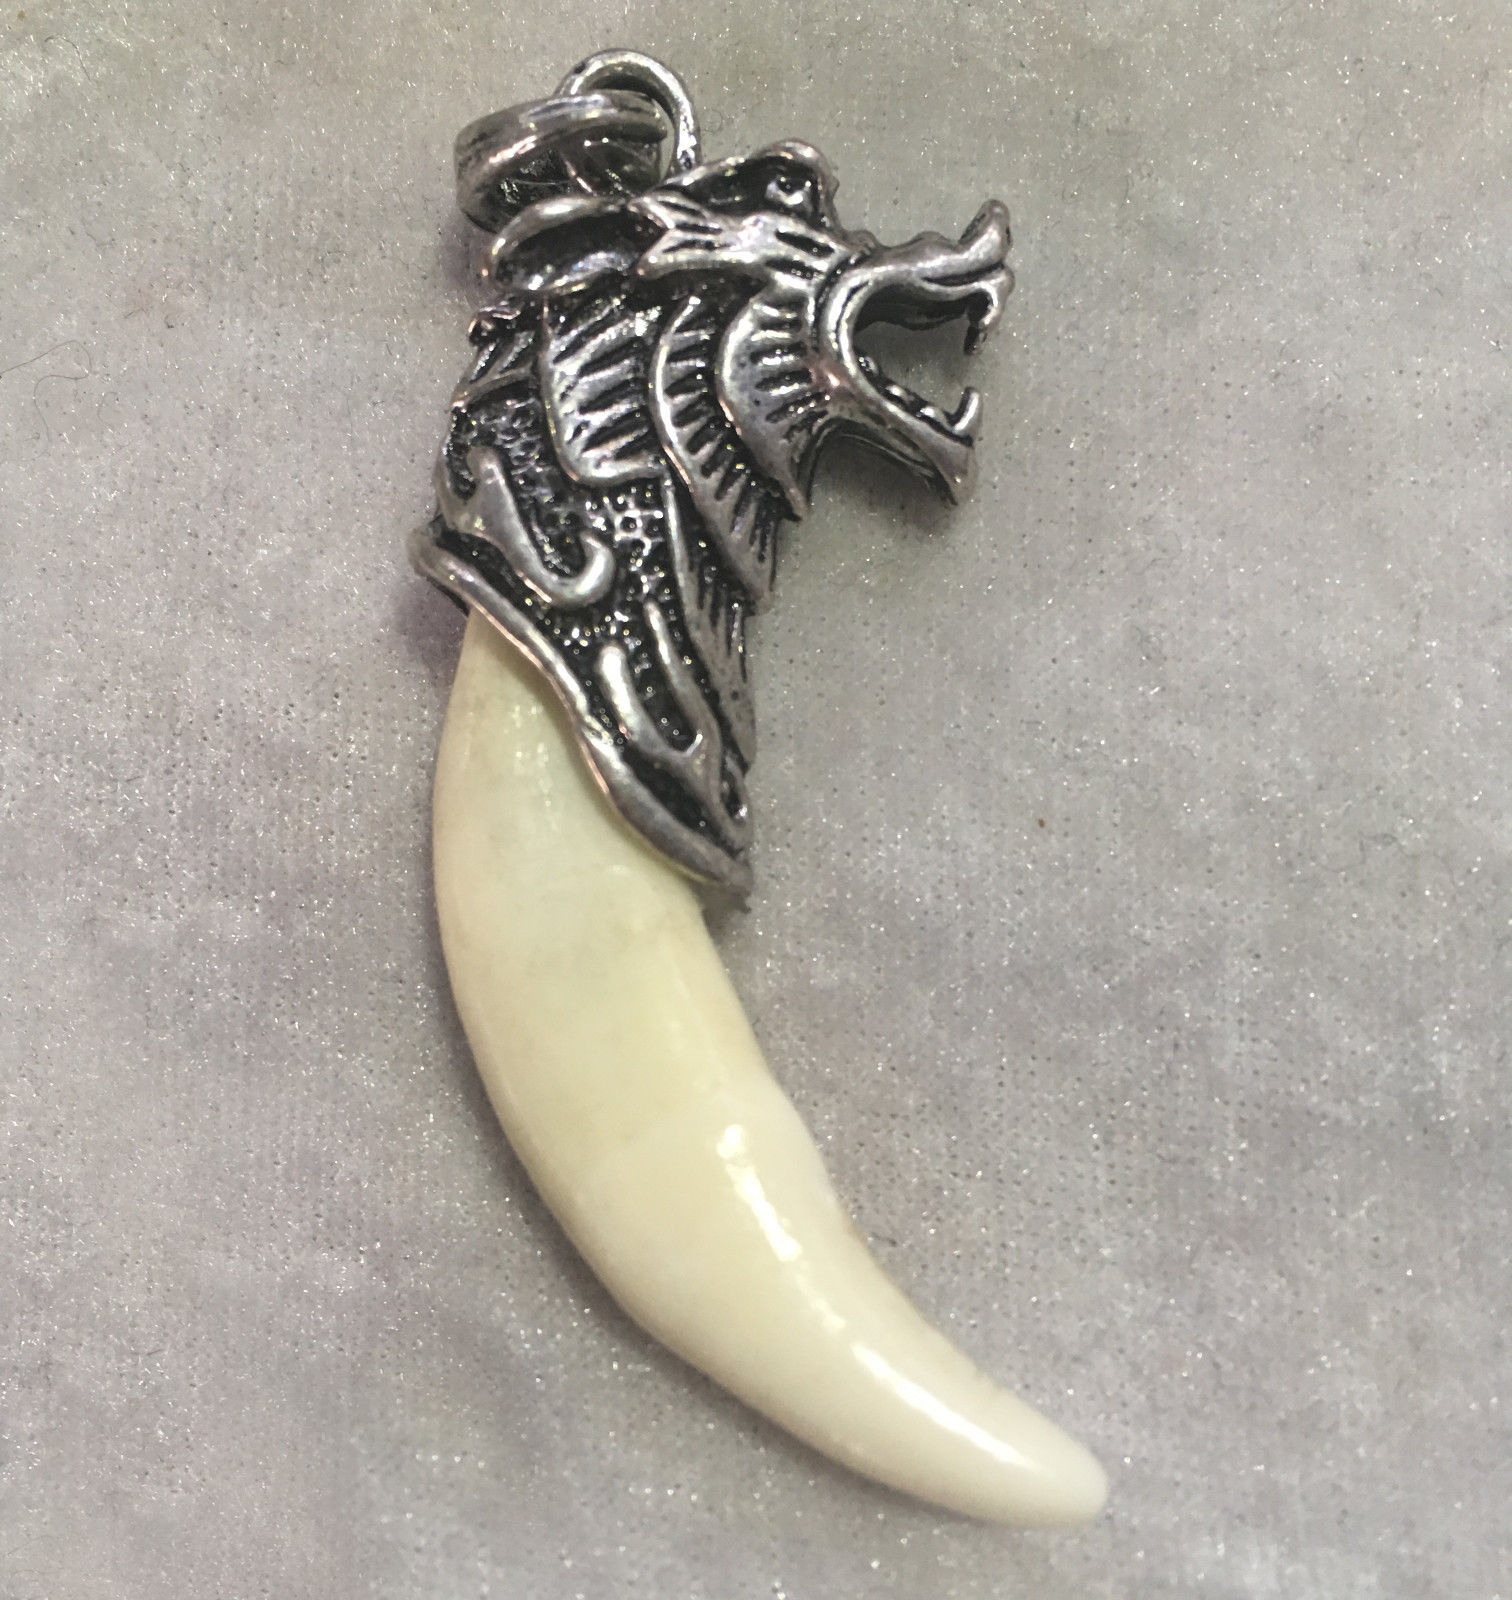 Chinese archaize Boars Tooth Wild Hog Silver Dragon protective talisman Pendant